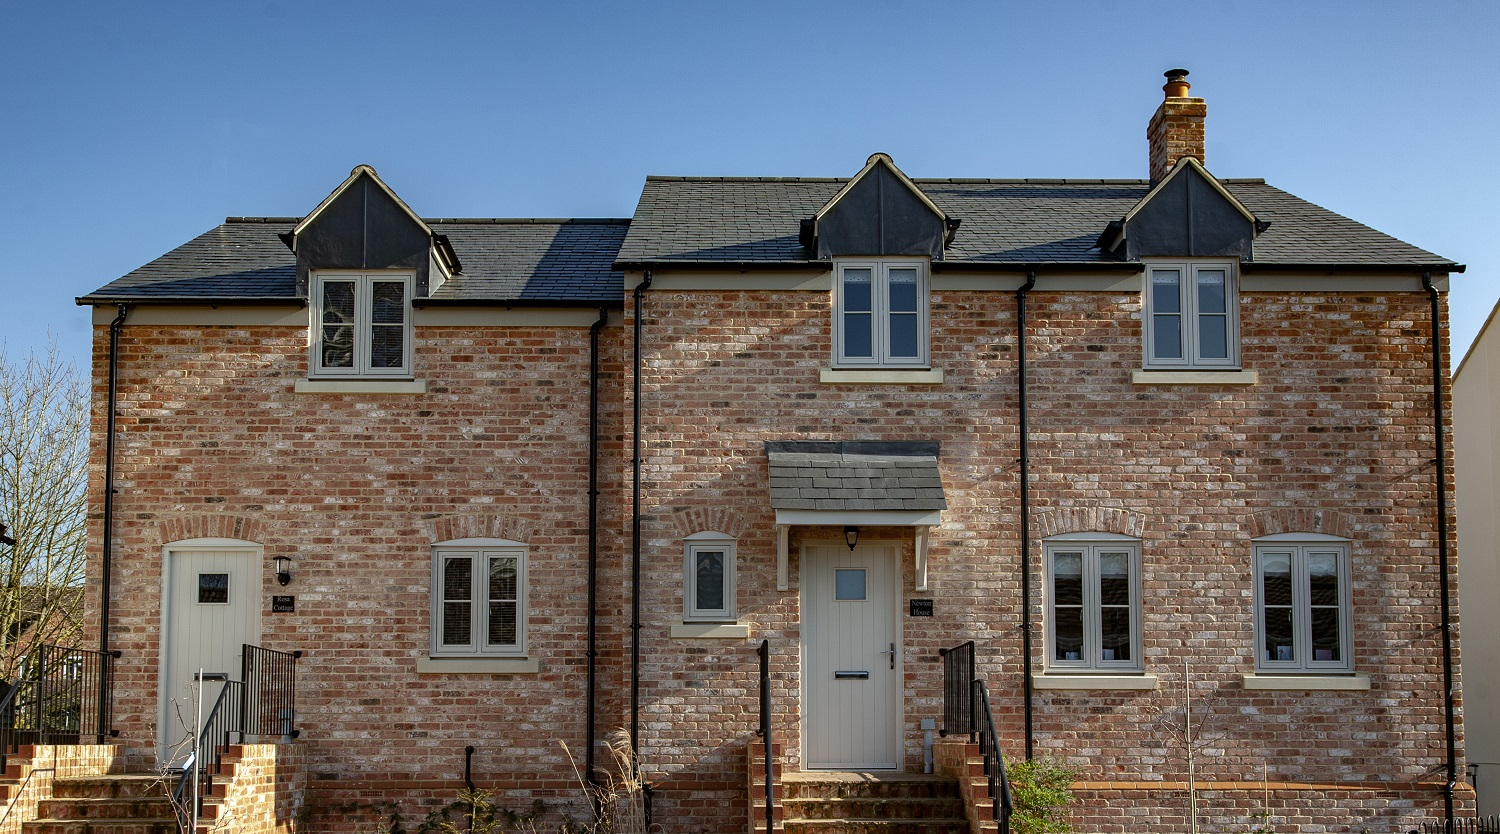 The WWA provides best practice guidance to housebuilders